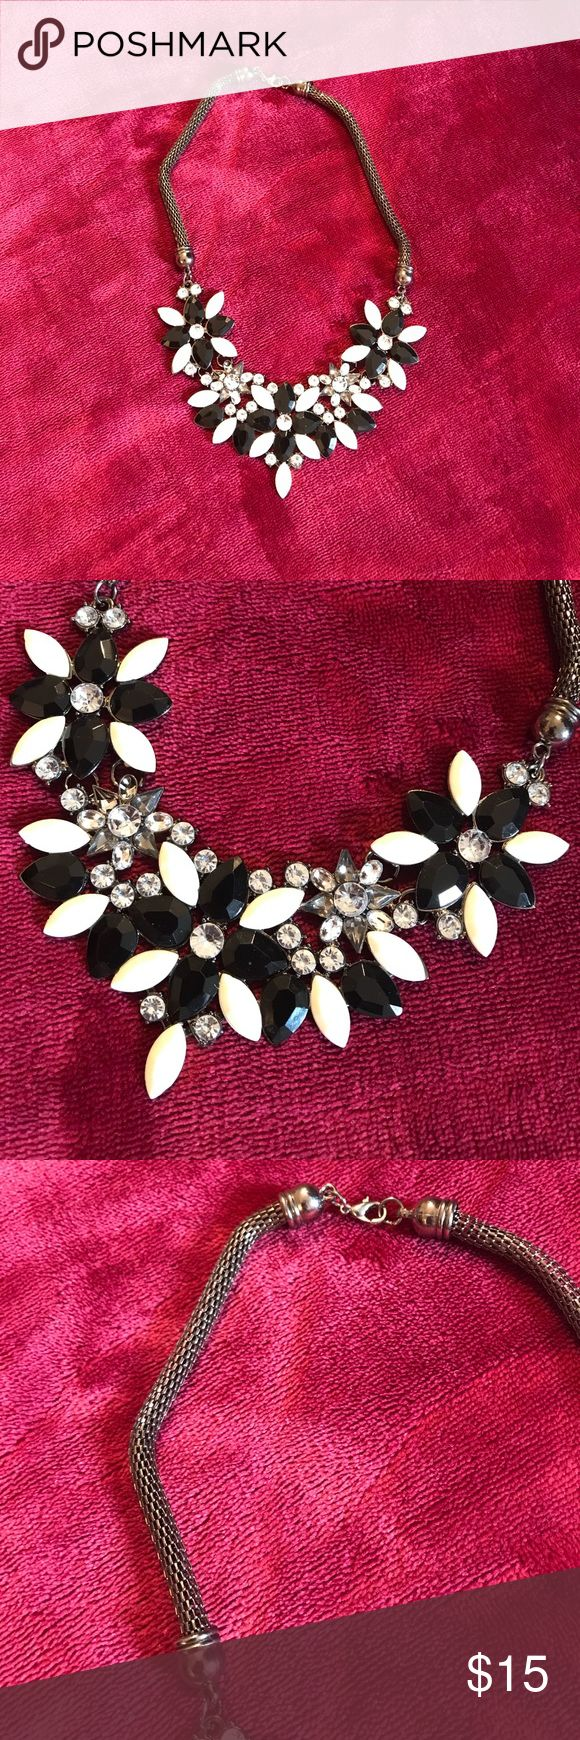 Black and White Statement Necklace Worn Once ••• Jewelry Necklaces